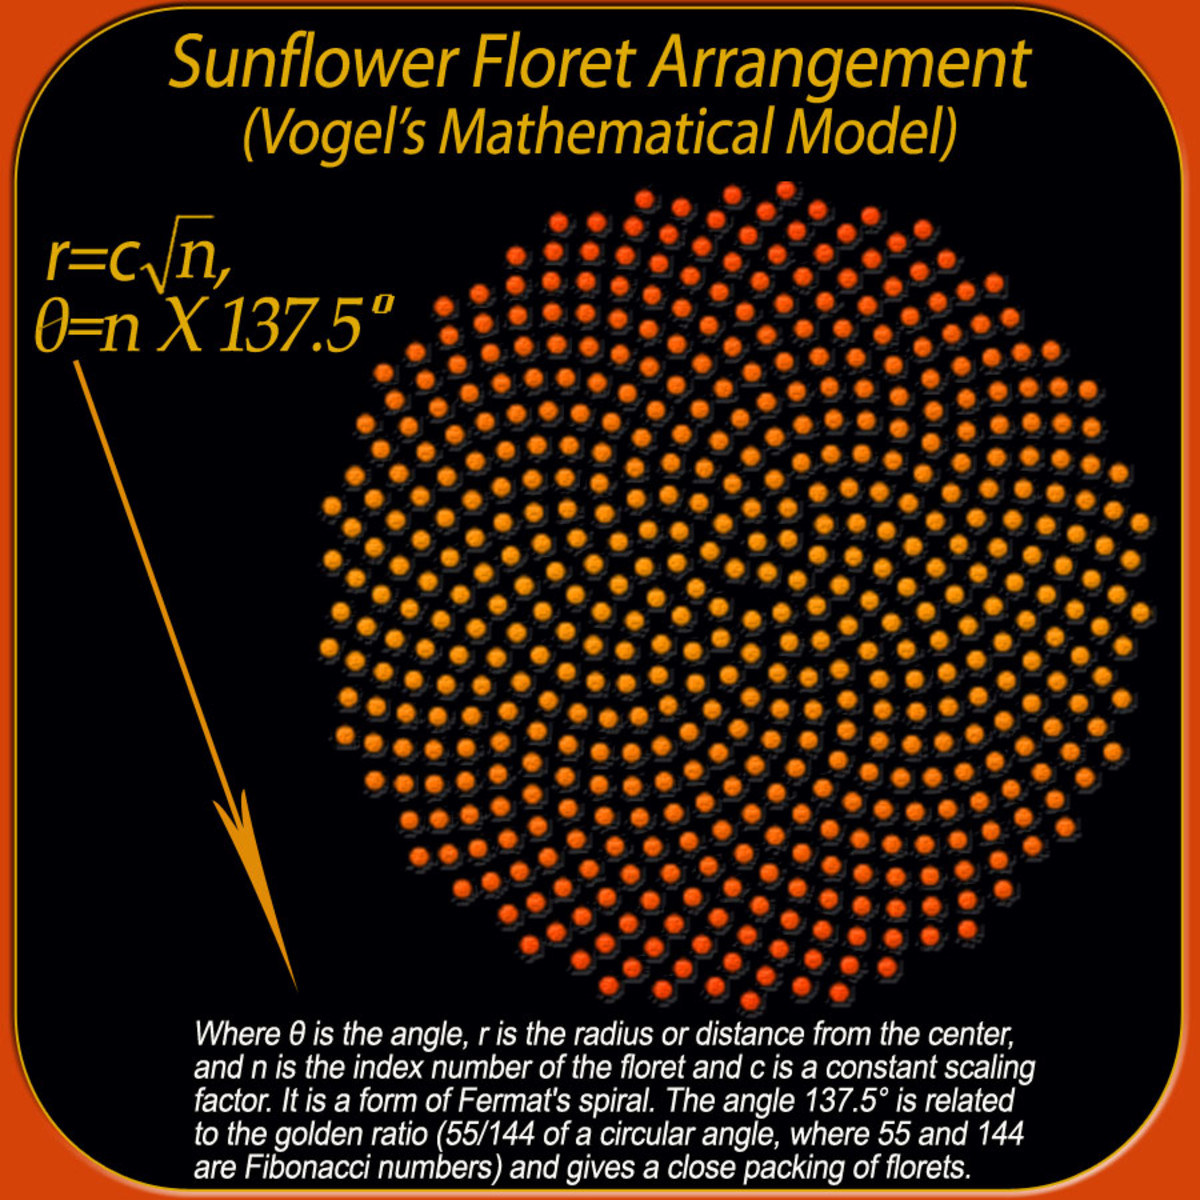 Sunflower floret mathematical arrangement.